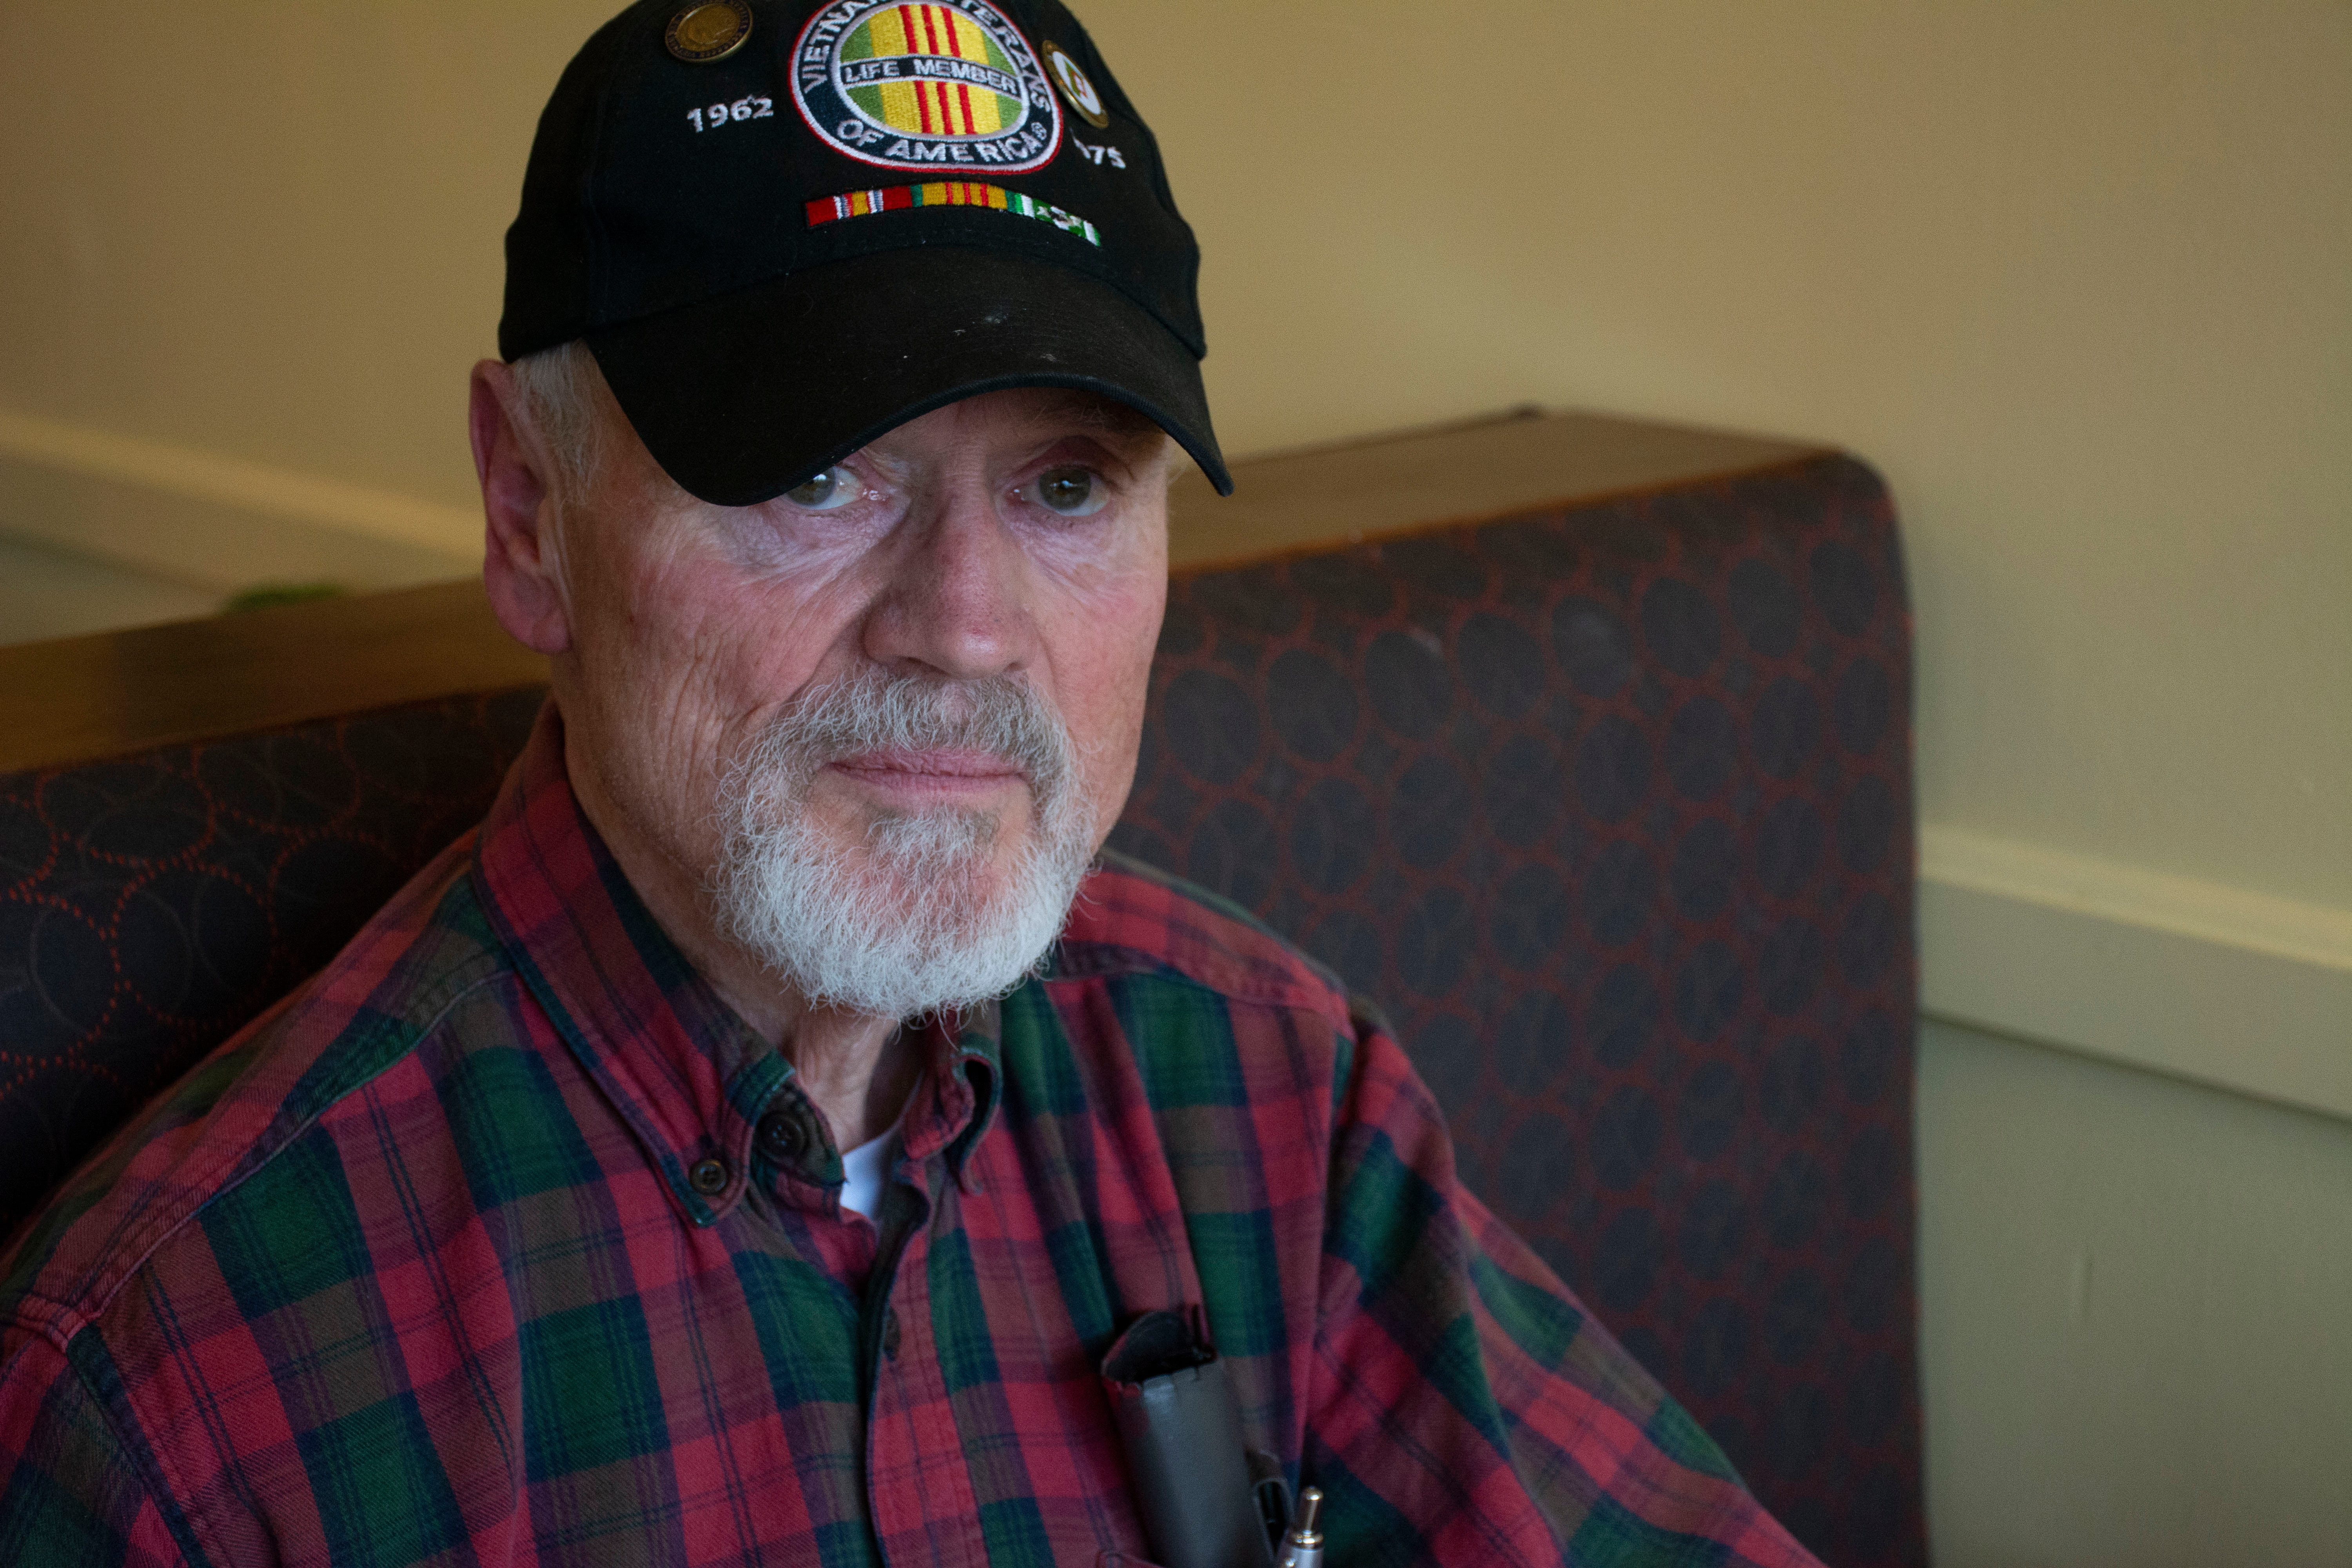 Vietnam vets pass the torch to a new generation in fight over toxic exposures